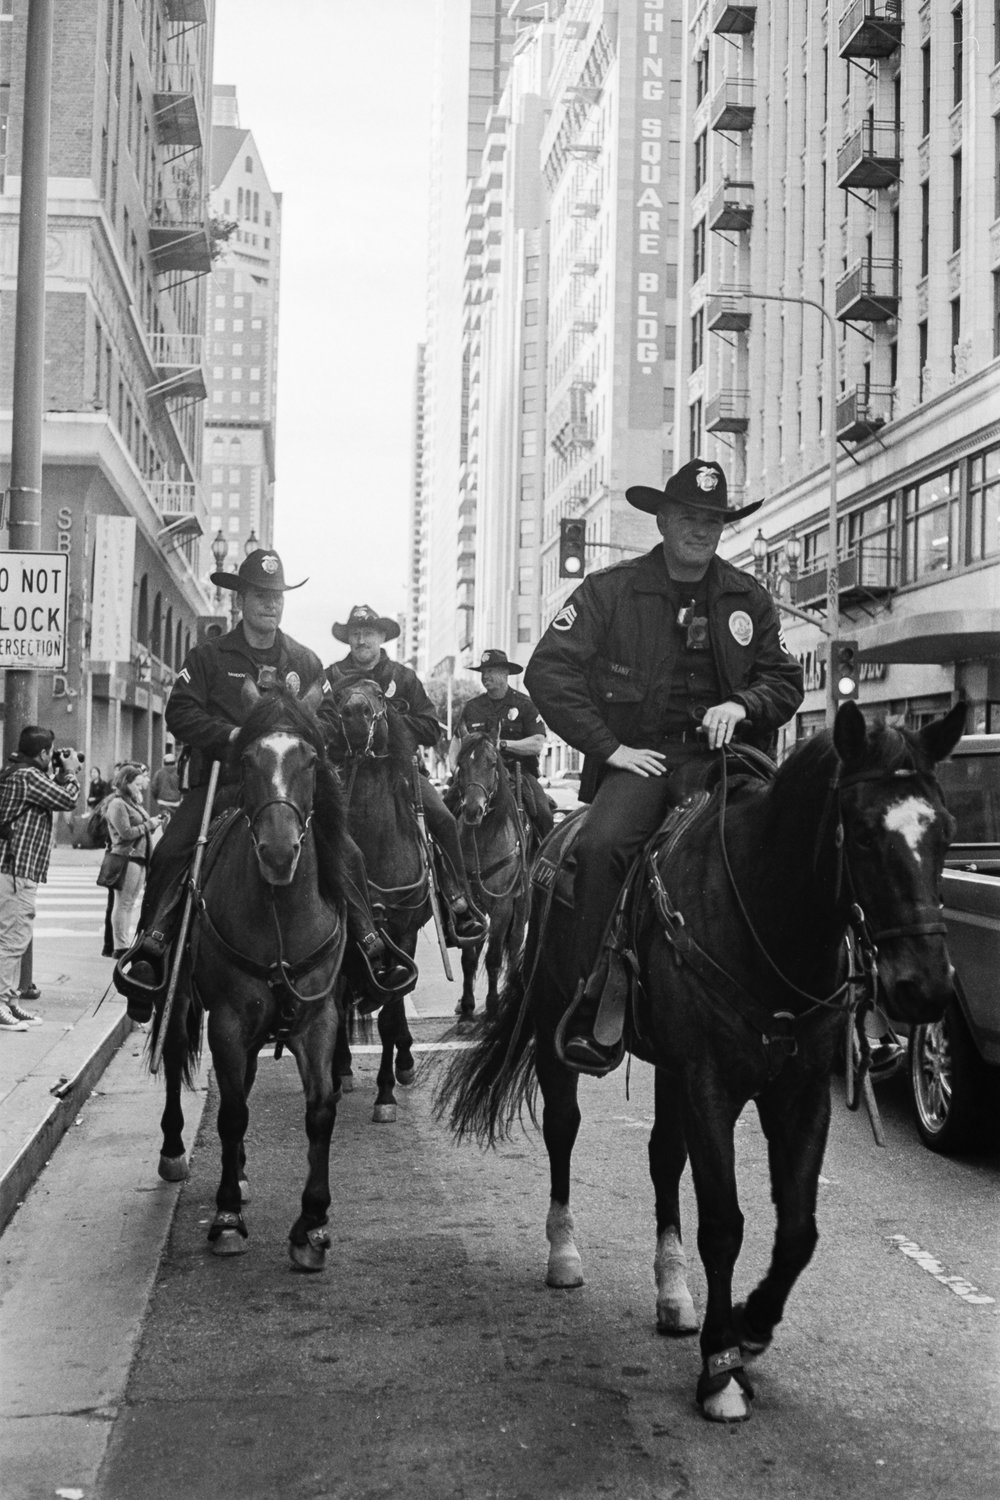 Mounted police patrol in Downtown Los Angeles, 2019